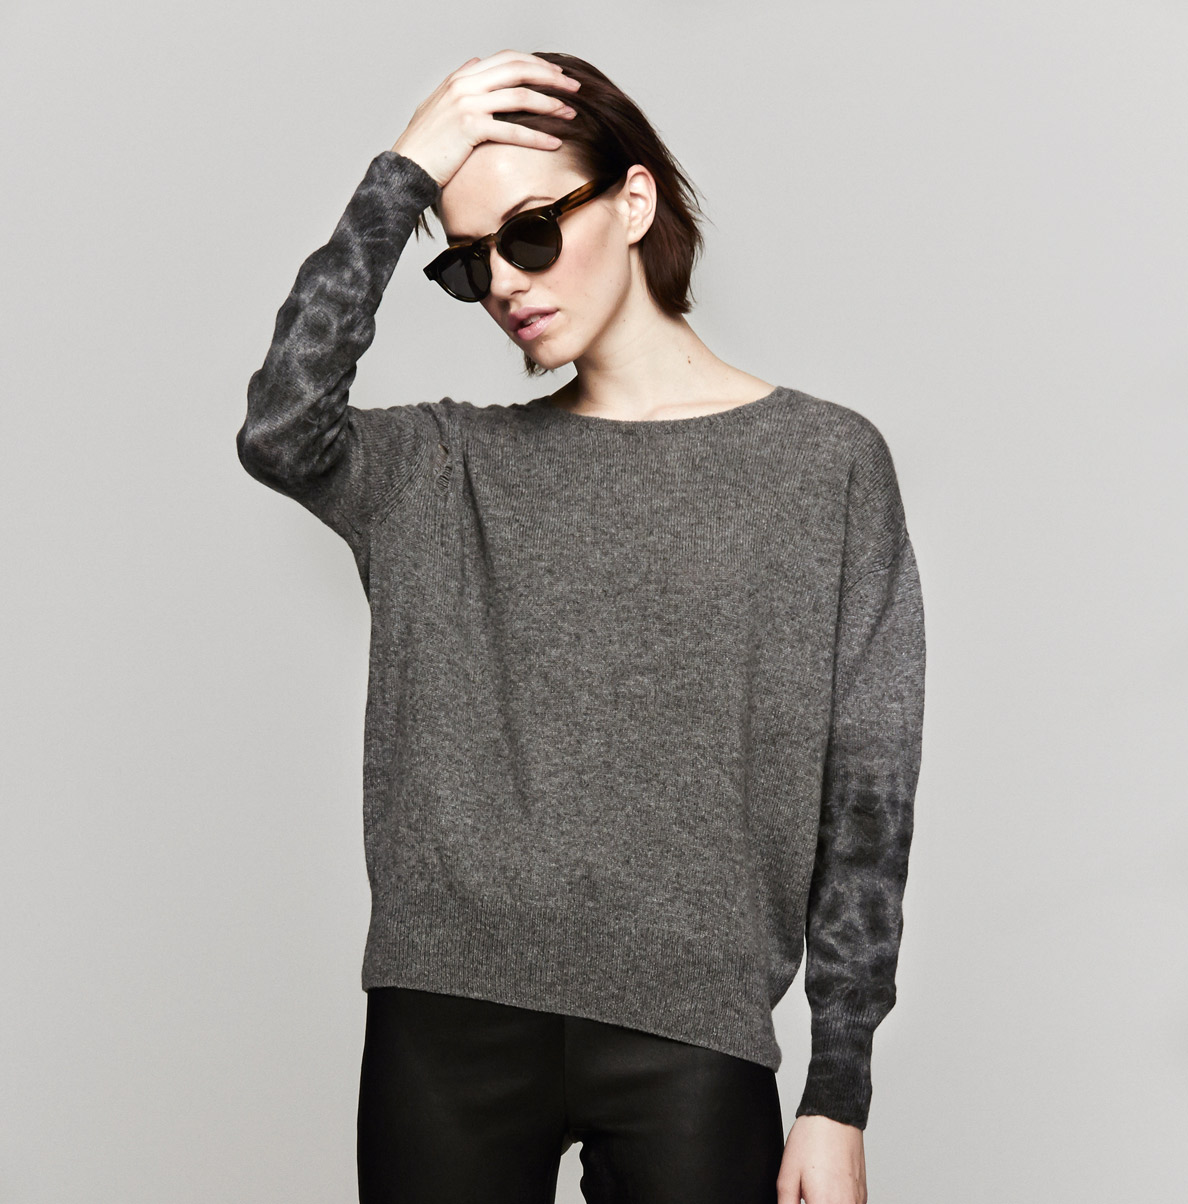 Raquel allegra Pullover Sweater in Gray | Lyst